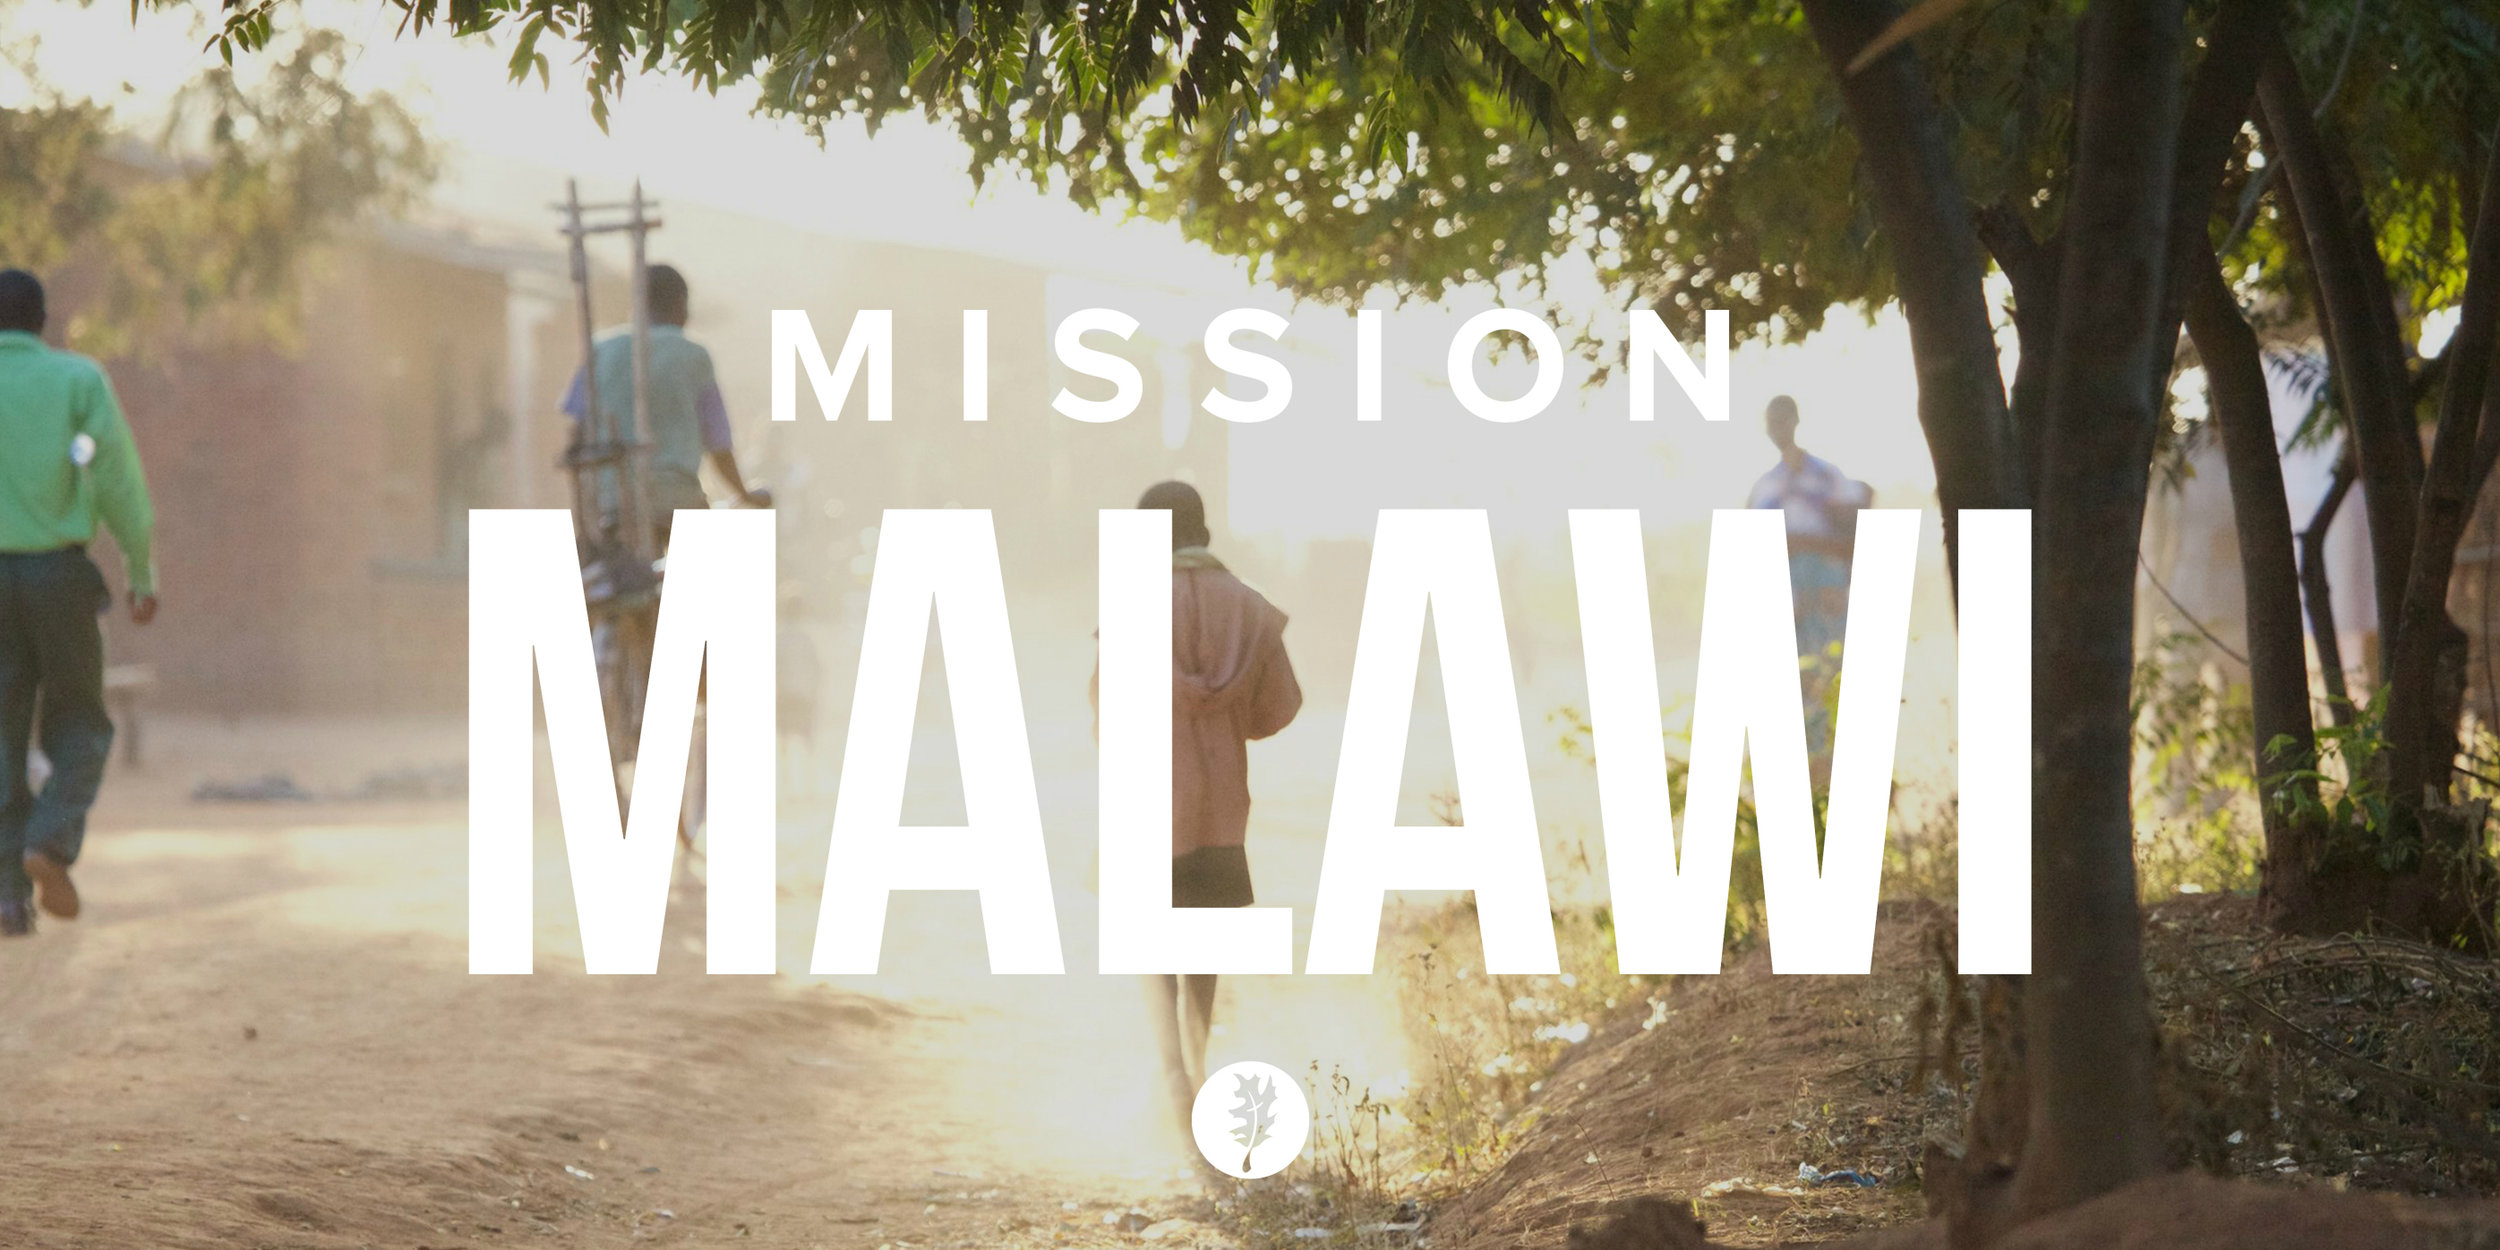 Mission Malawi smaller.jpg